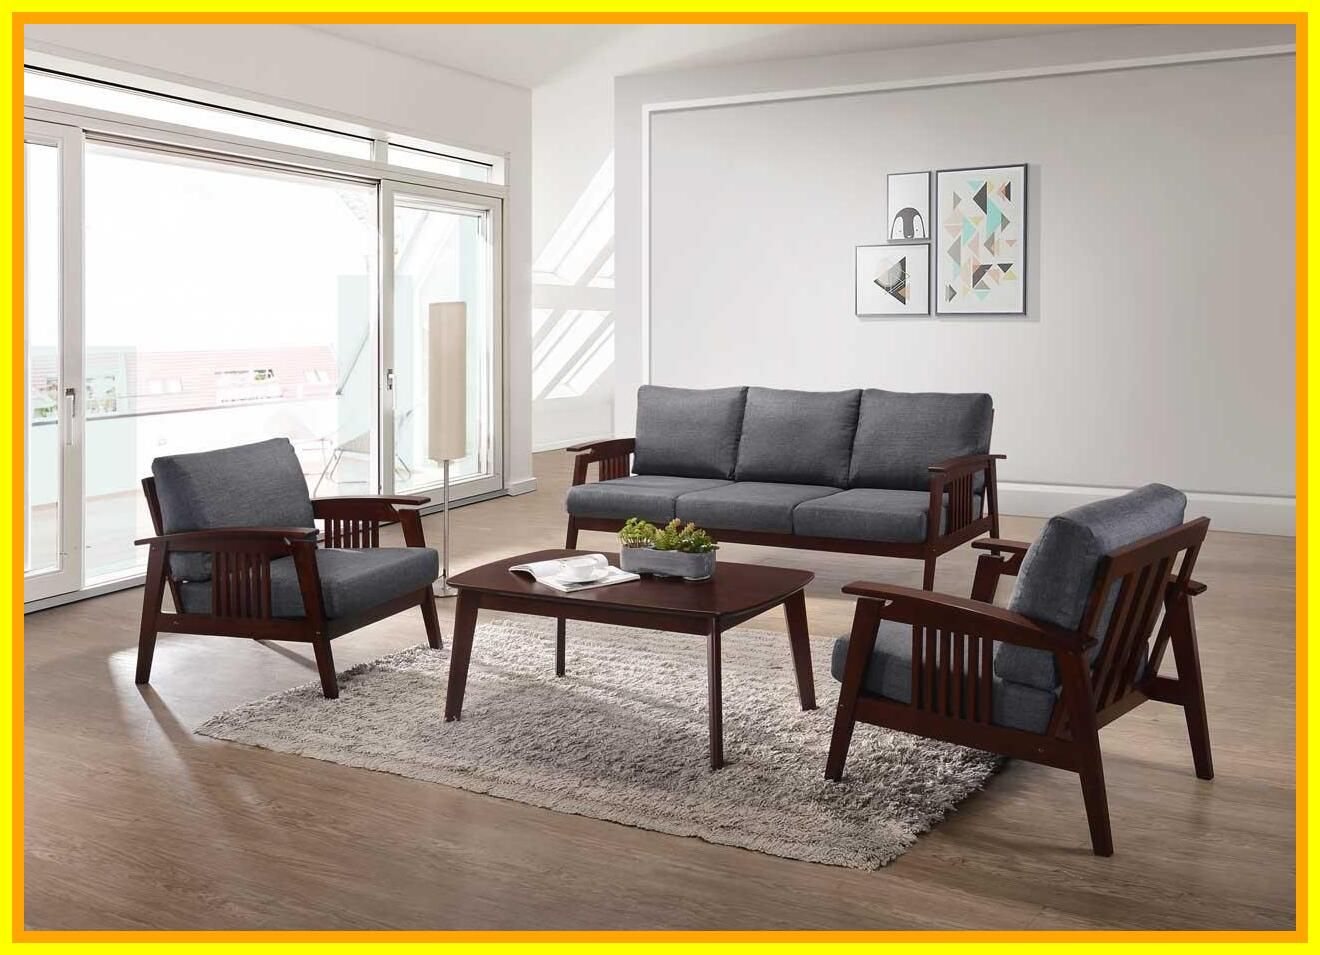 101 reference of sofa set price below 20000 in 2020 Sofa